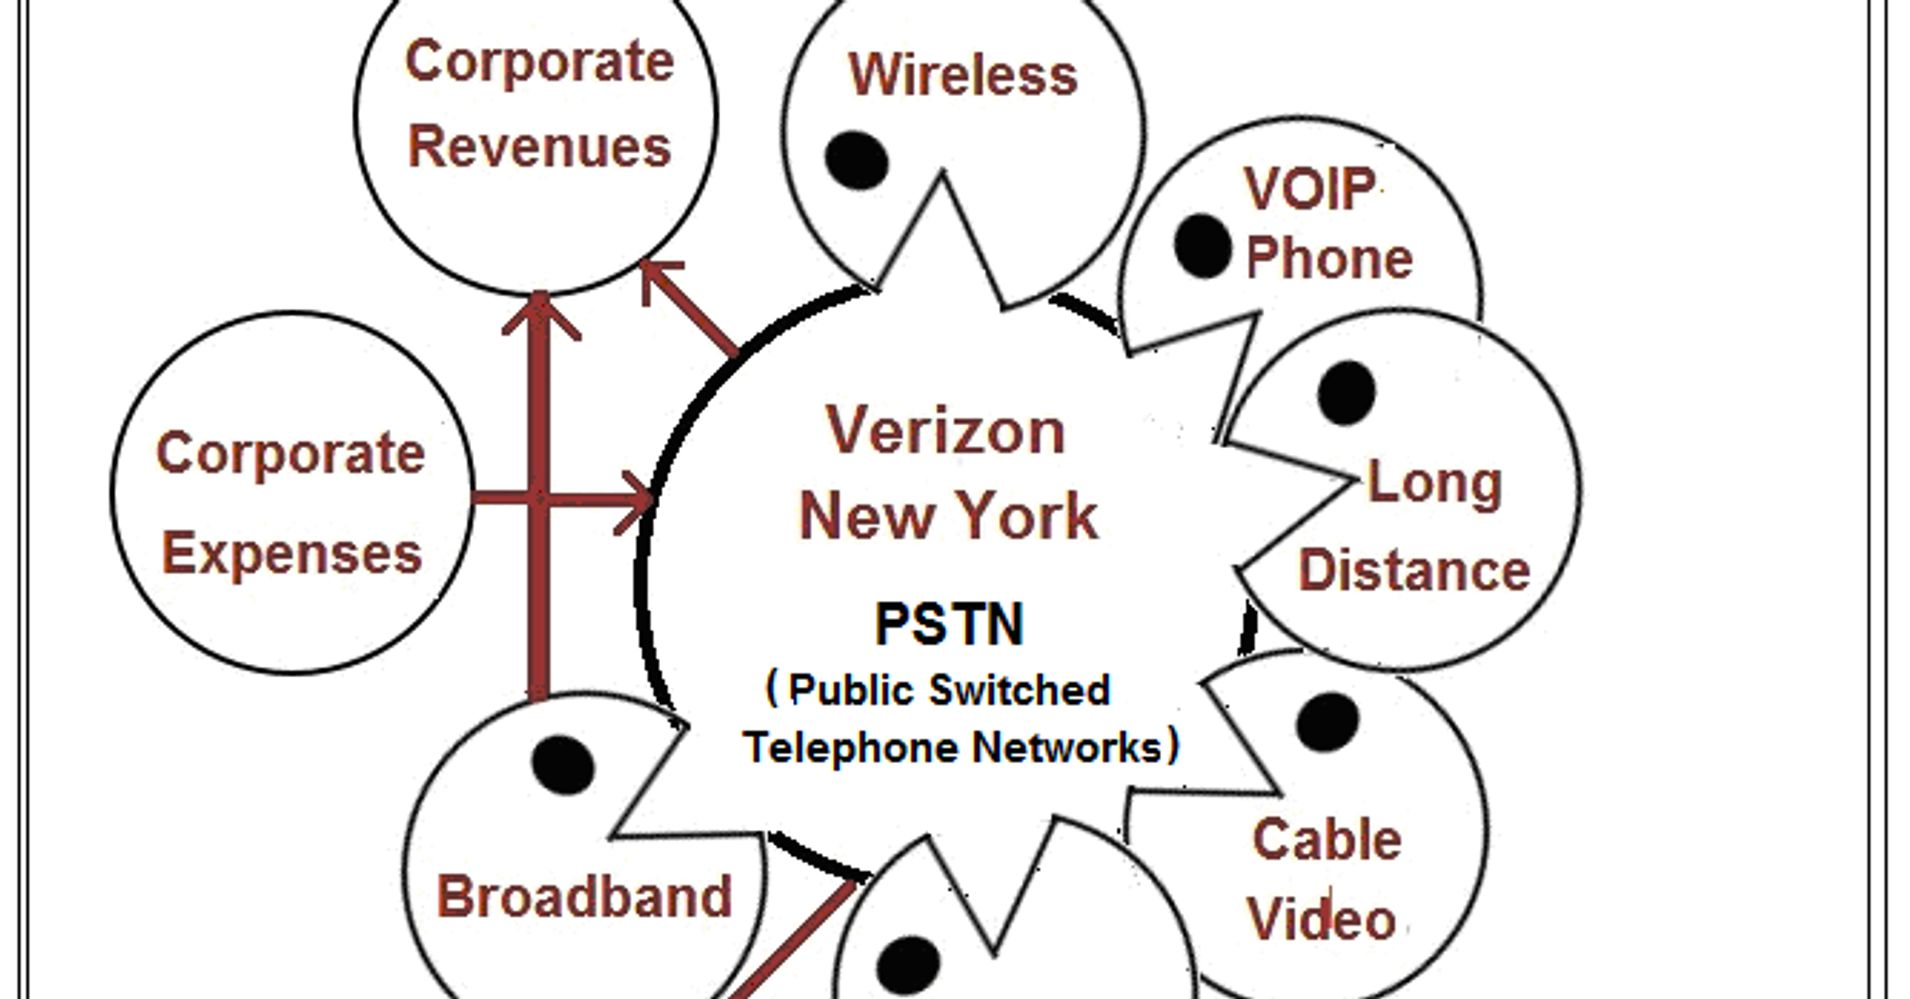 verizon new york 2016 annual report reveals massive financial  cross-subsidies  state investigation heats up